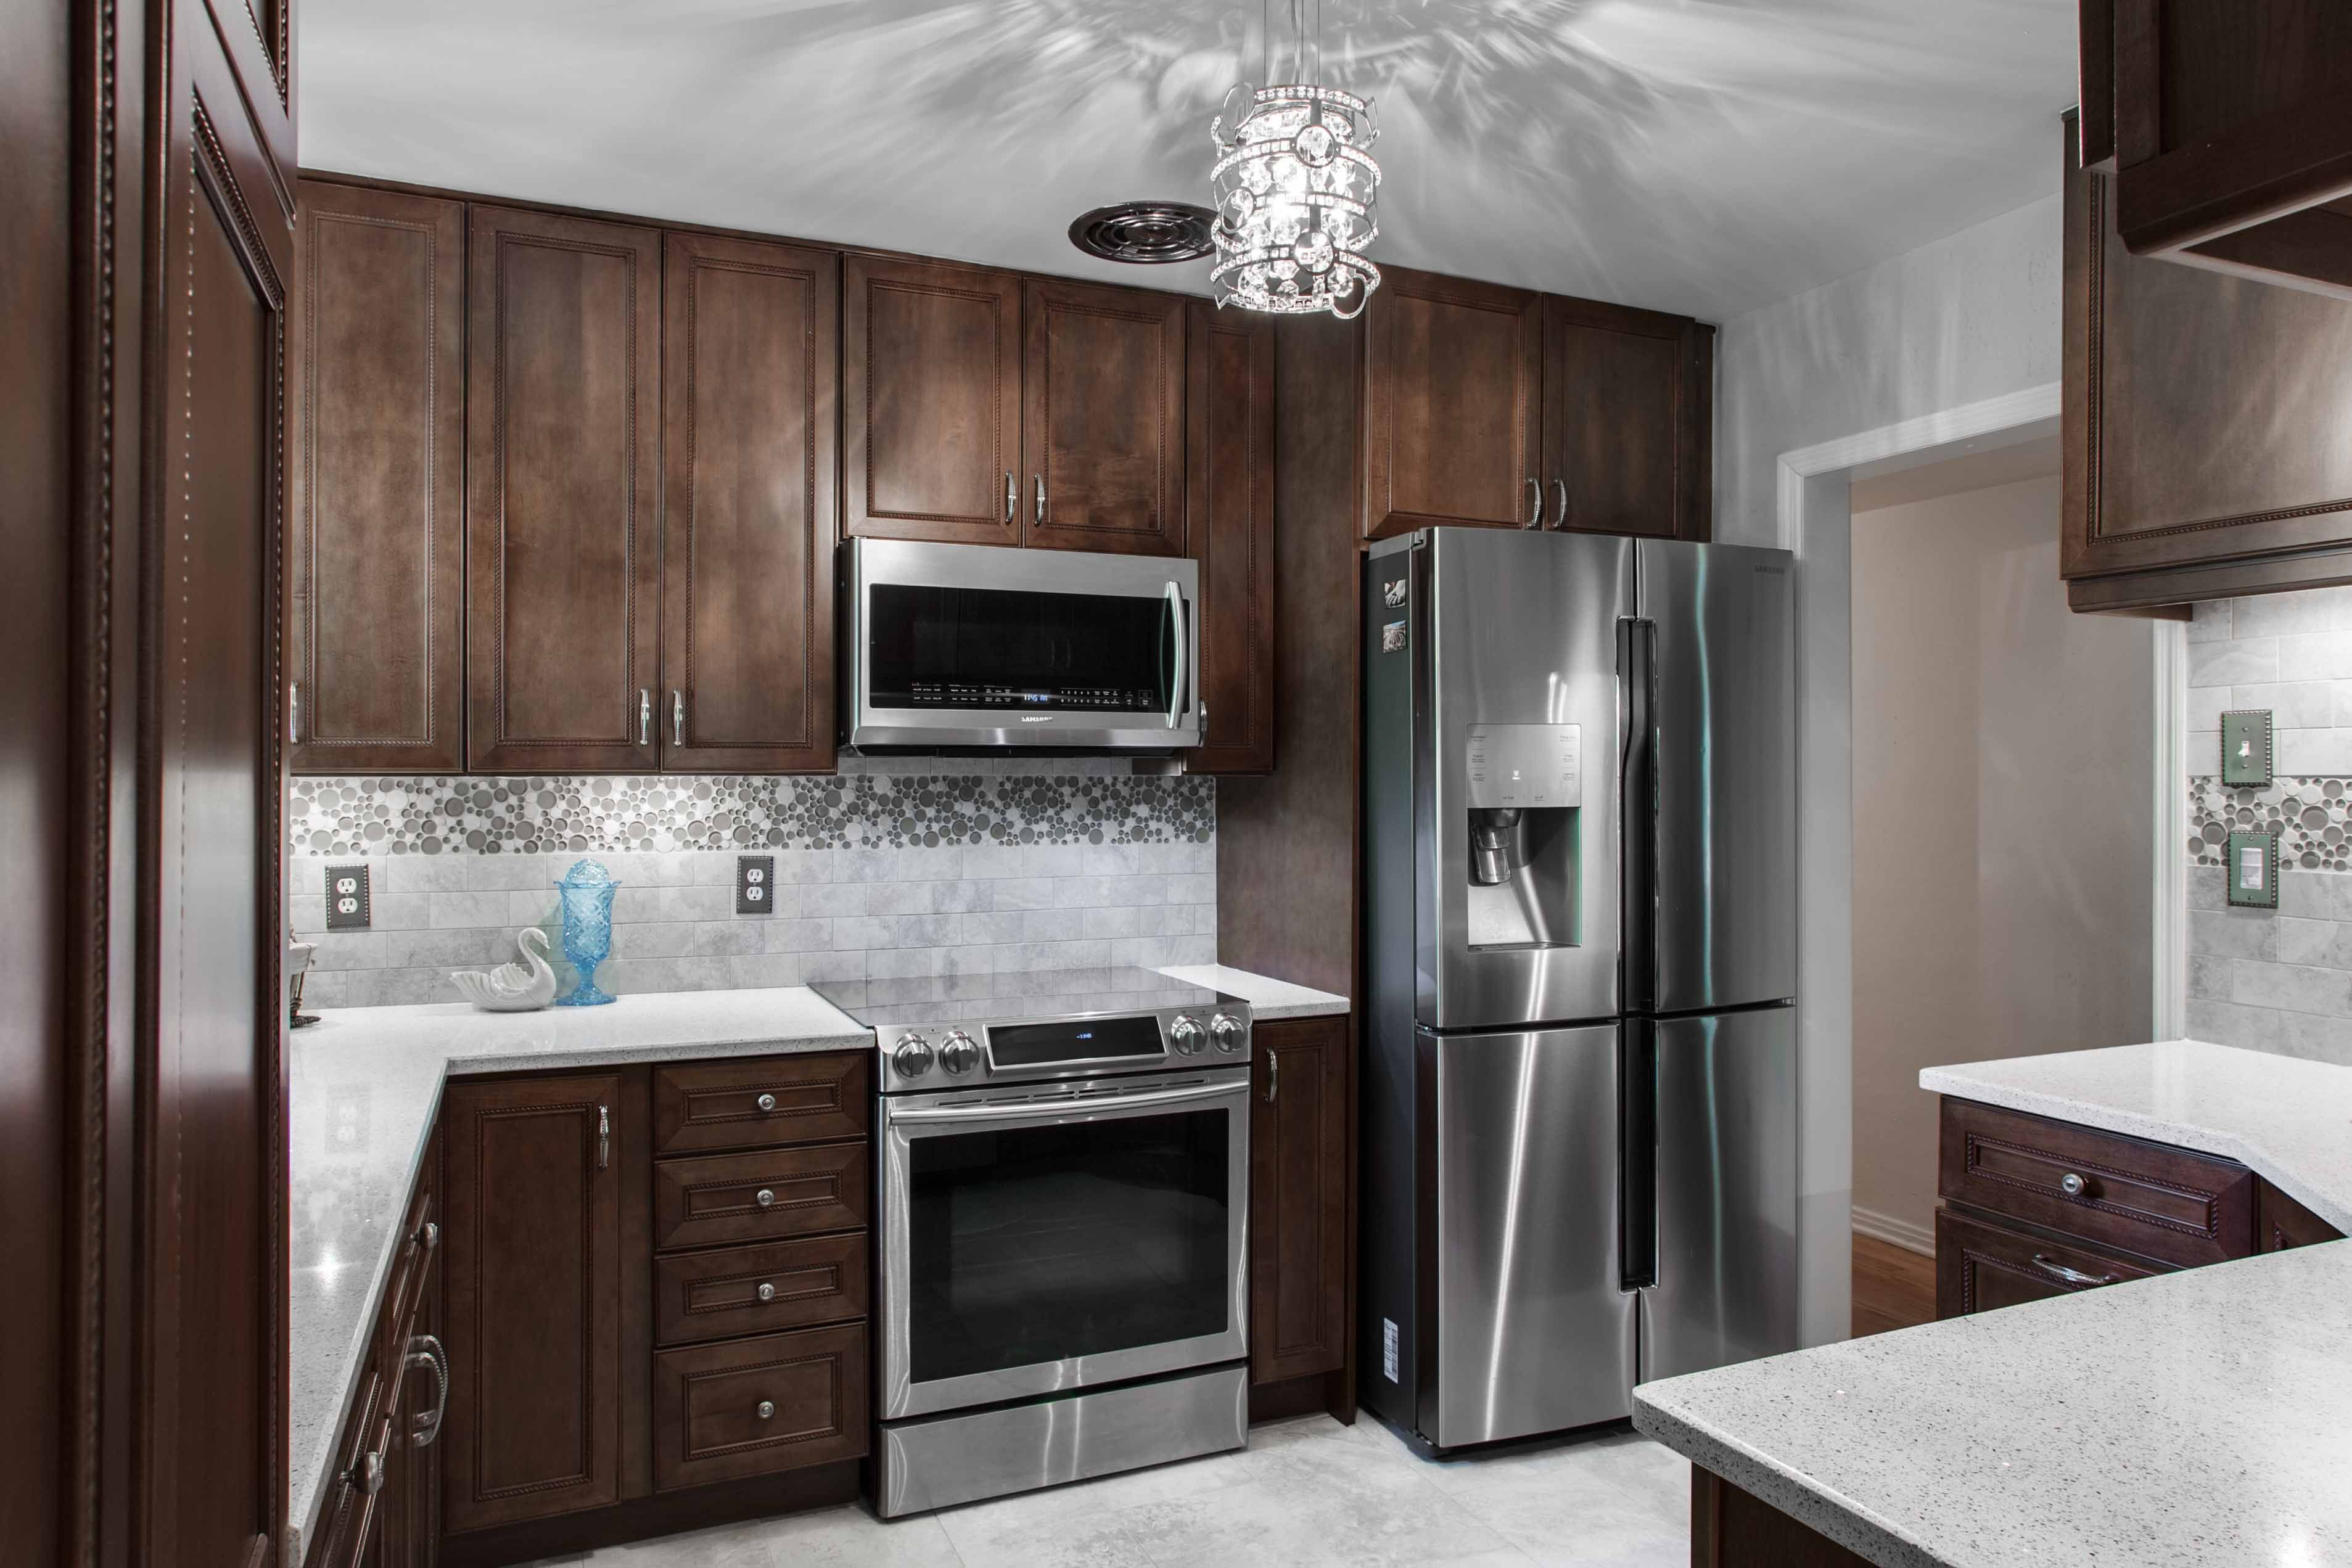 Update Your Kitchen For The 2014 Holidays Kitchen Remodel Http Www Davidgrayplumbing Com With Images Kitchen Bathroom Remodel Kitchen Remodel Bathrooms Remodel